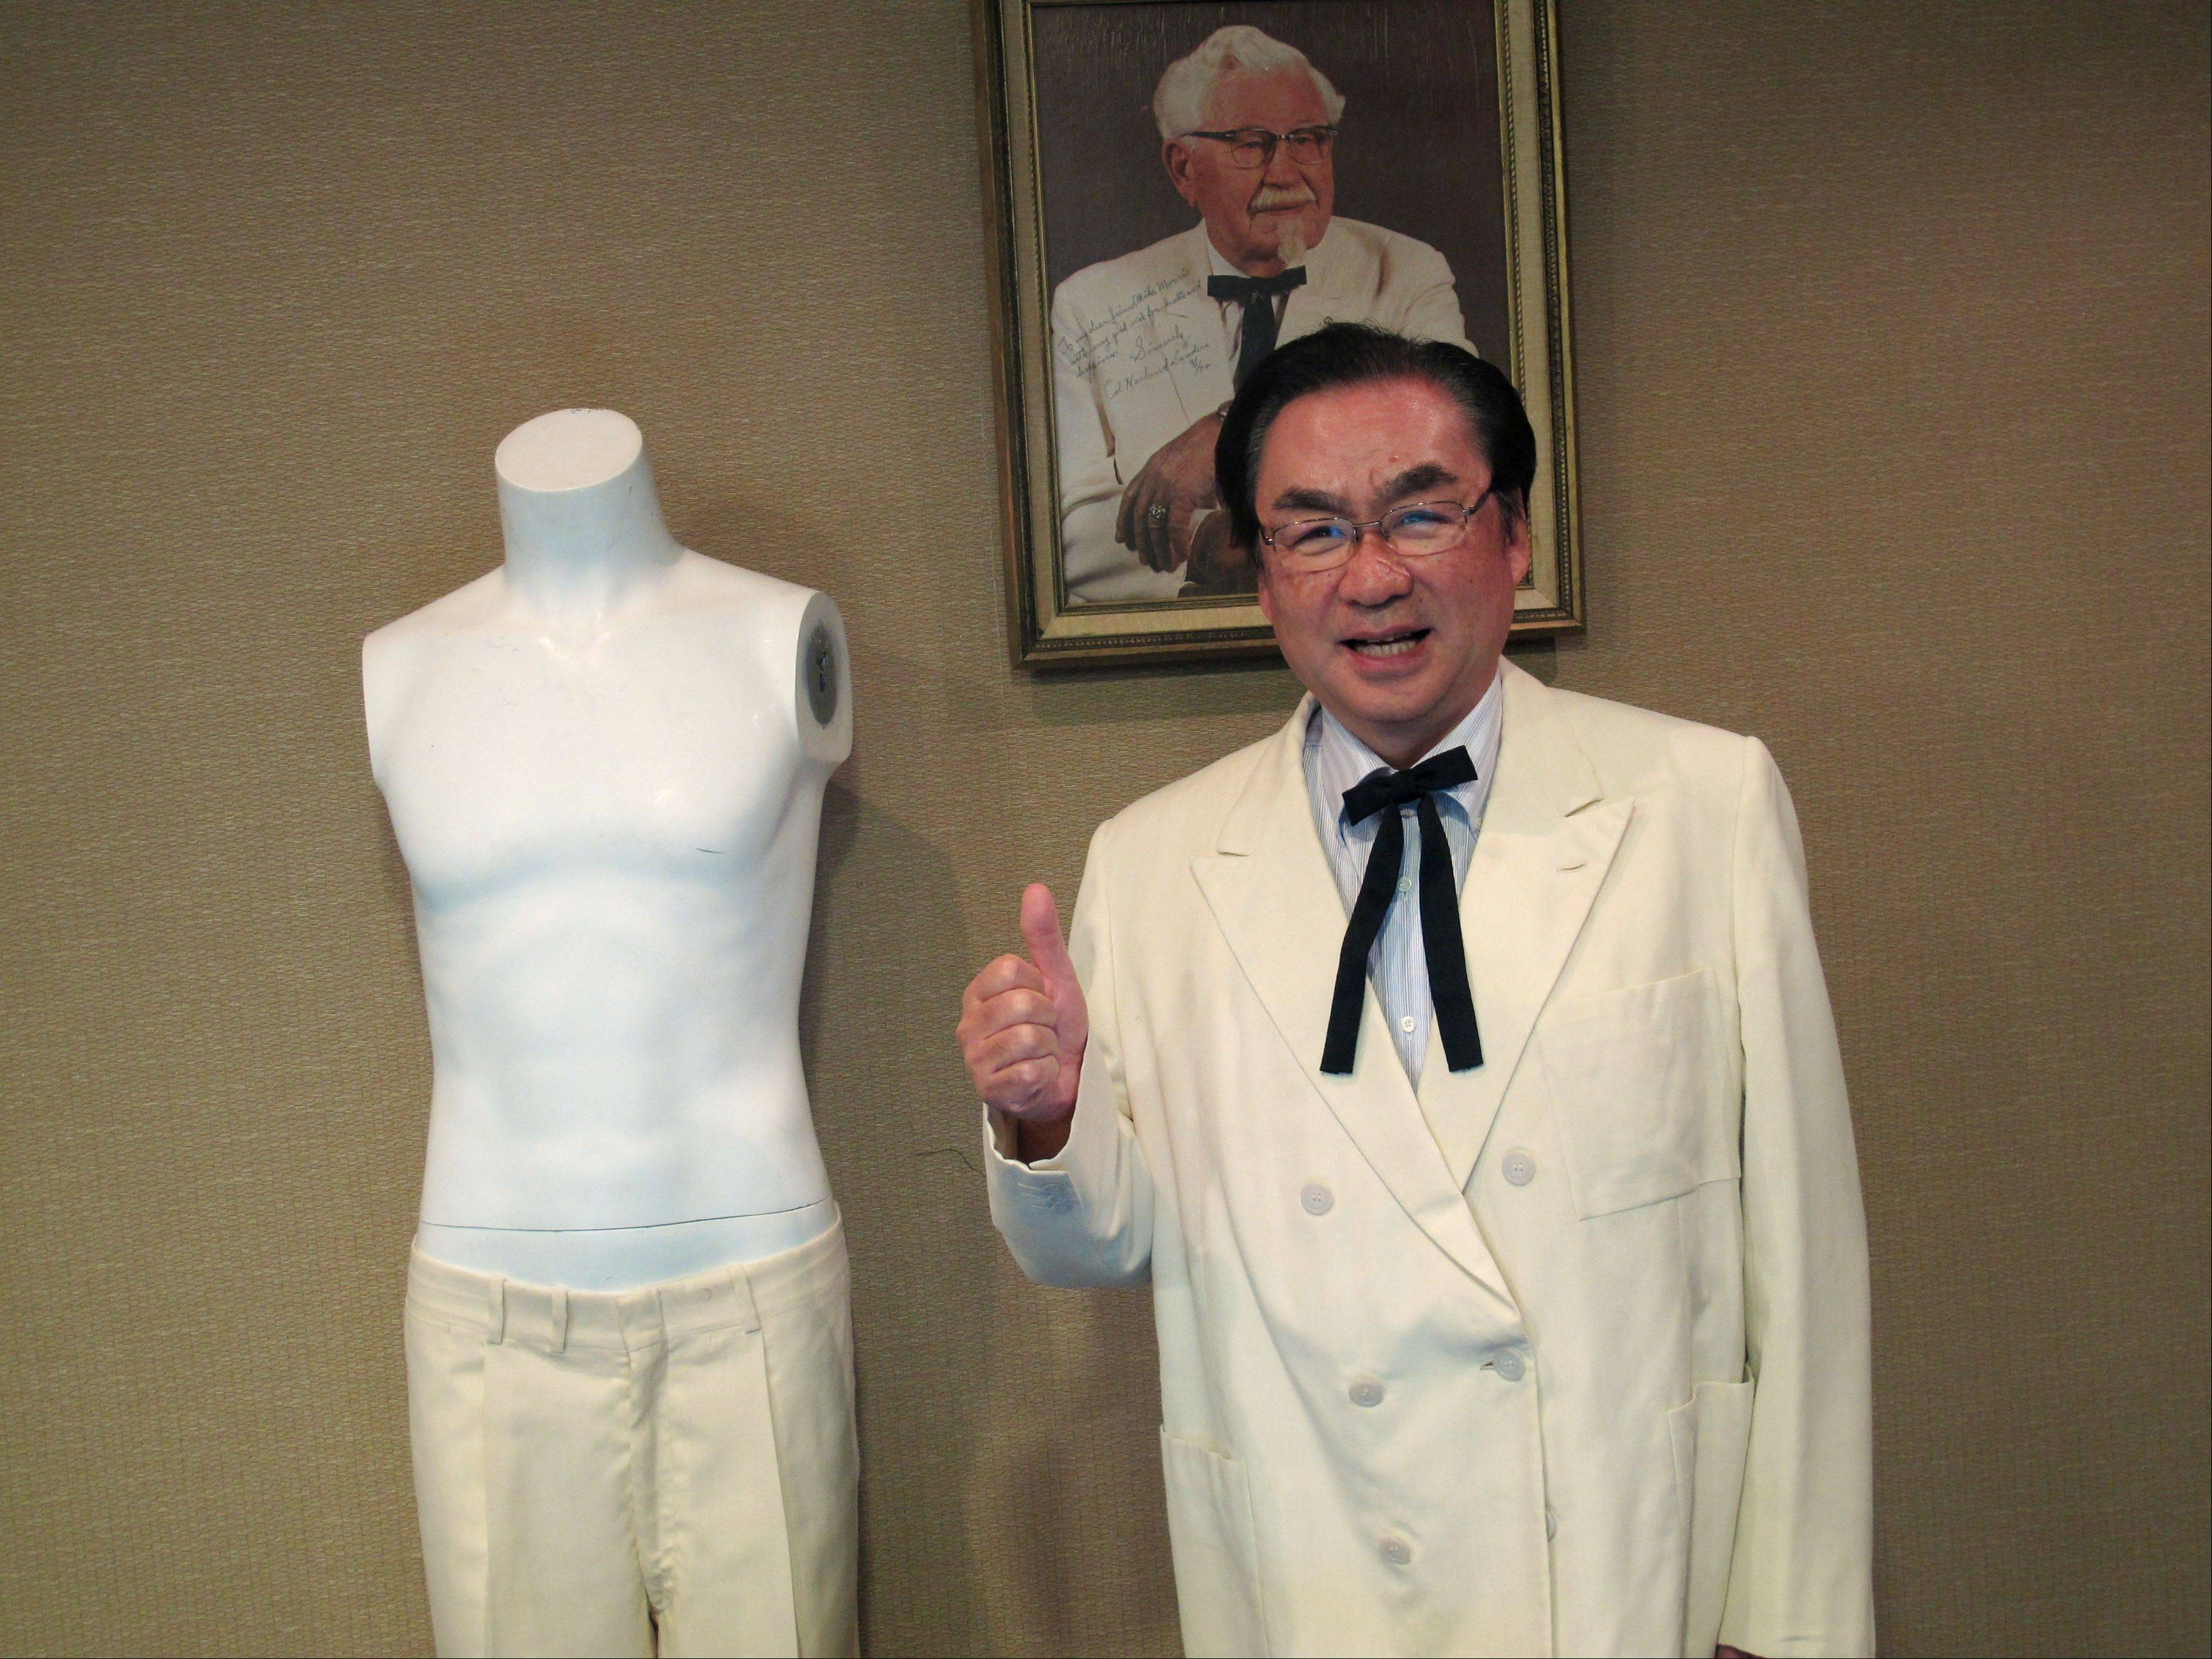 Masao �Charlie� Watanabe, president and chief executive of Kentucky Fried Chicken Japan, stands Saturday beneath a portrait of company founder �Colonel� Harland Sanders, at Heritage Auctions in Dallas.